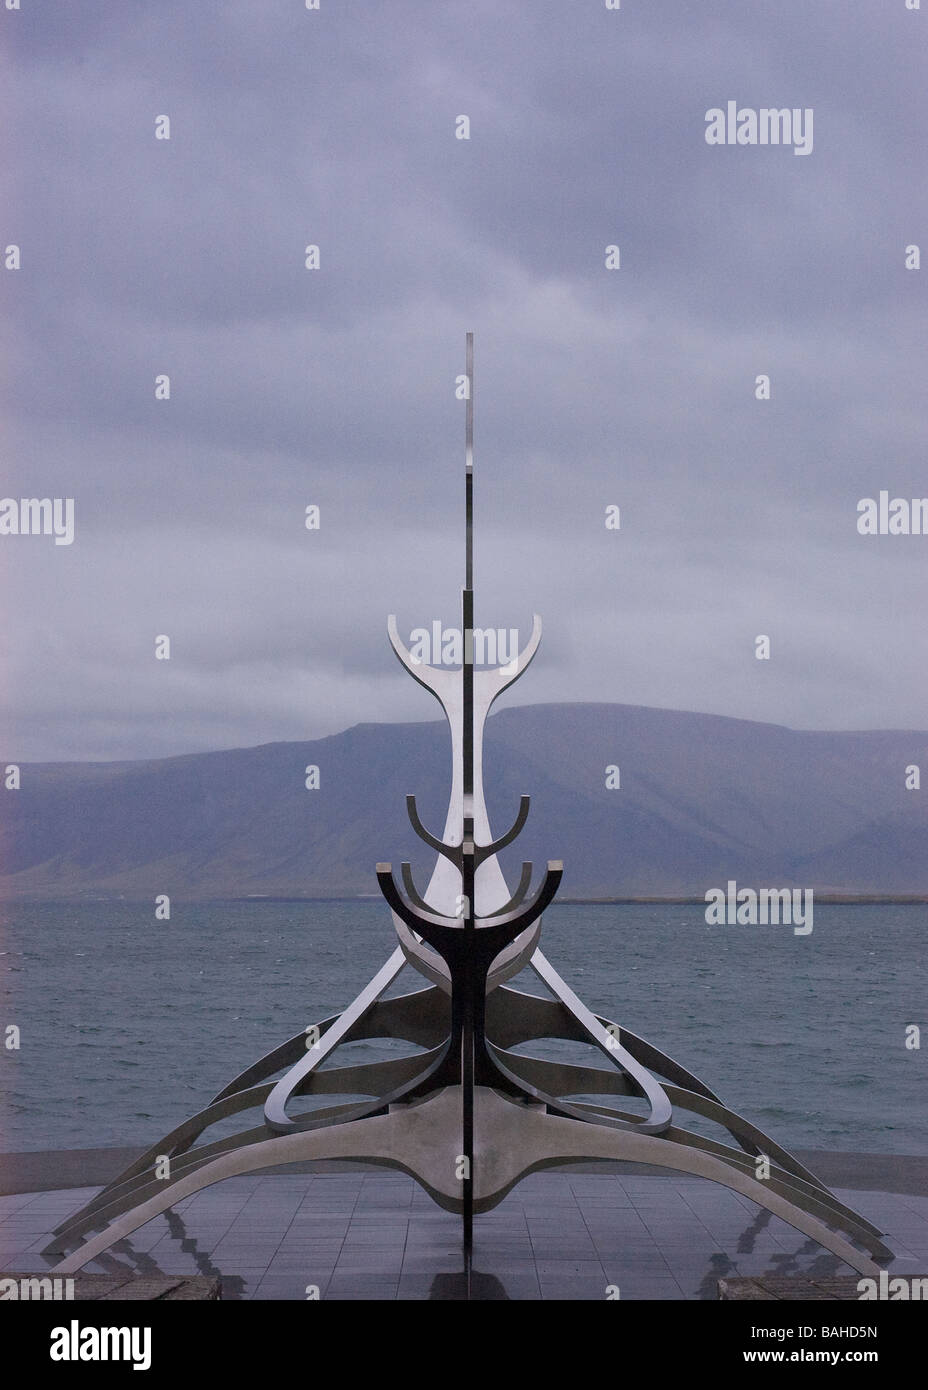 Sun Voyager scultpure near the shore in Reykjavik, Iceland Stock Photo